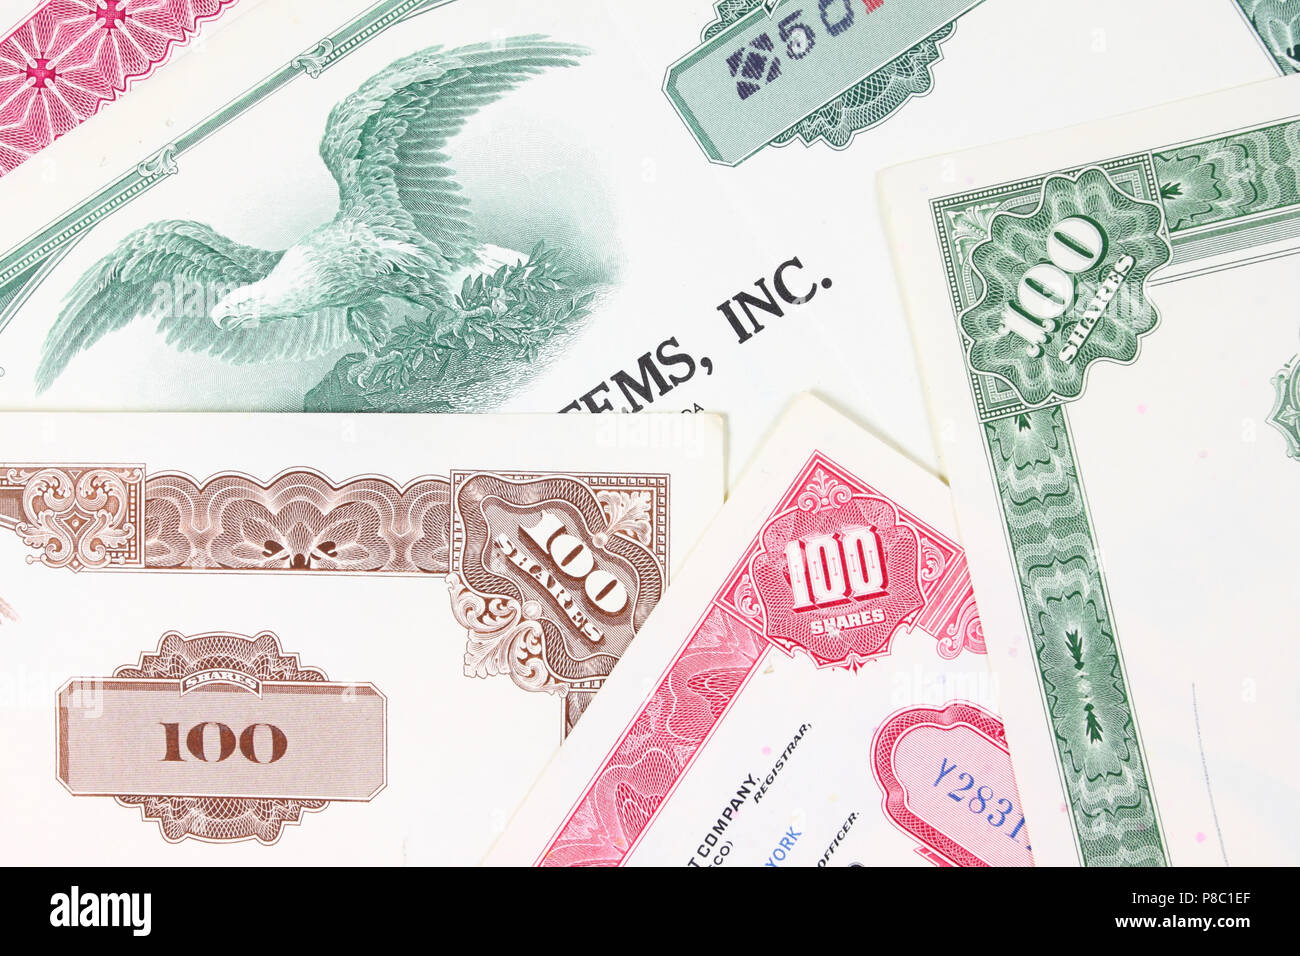 Stock market collectibles. Old stock share certificates from 1950s-1970s (United States). Vintage scripophily objects (obsolete). - Stock Image